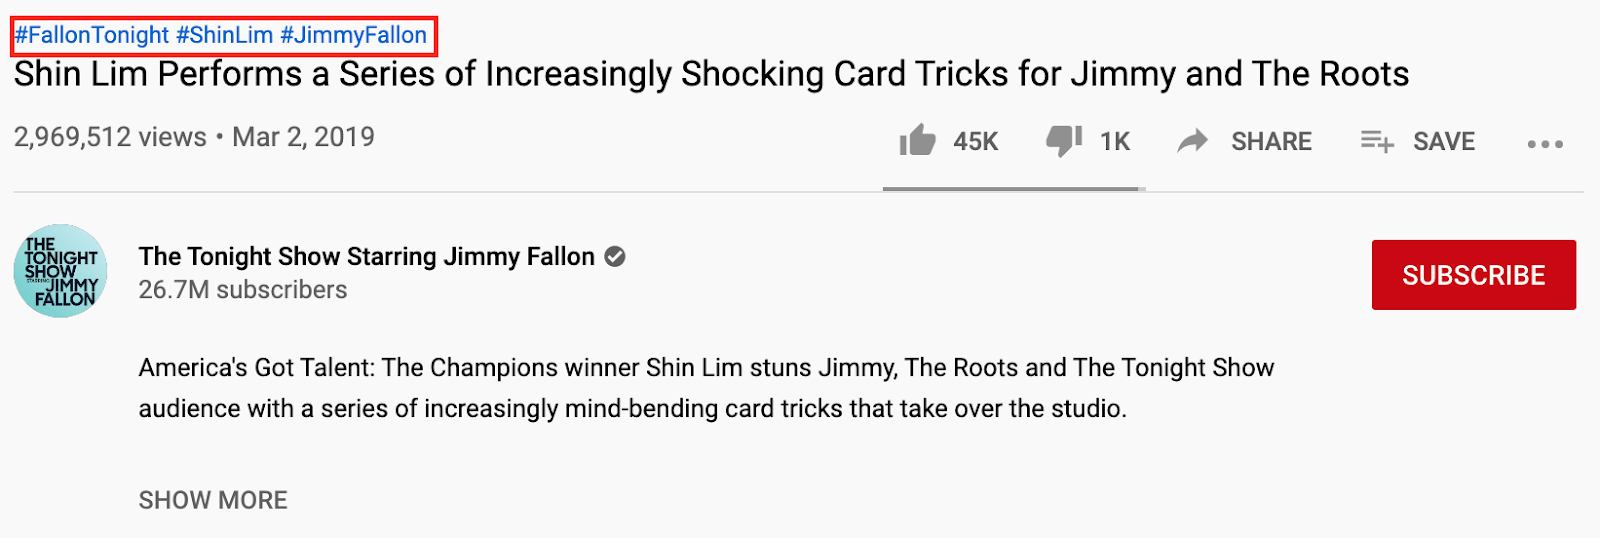 "#JimmyFallon"", #FallonTonight"", and #ShinLim are the three hashtags that Jimmy Fallon uses on one of the episodes of his show."